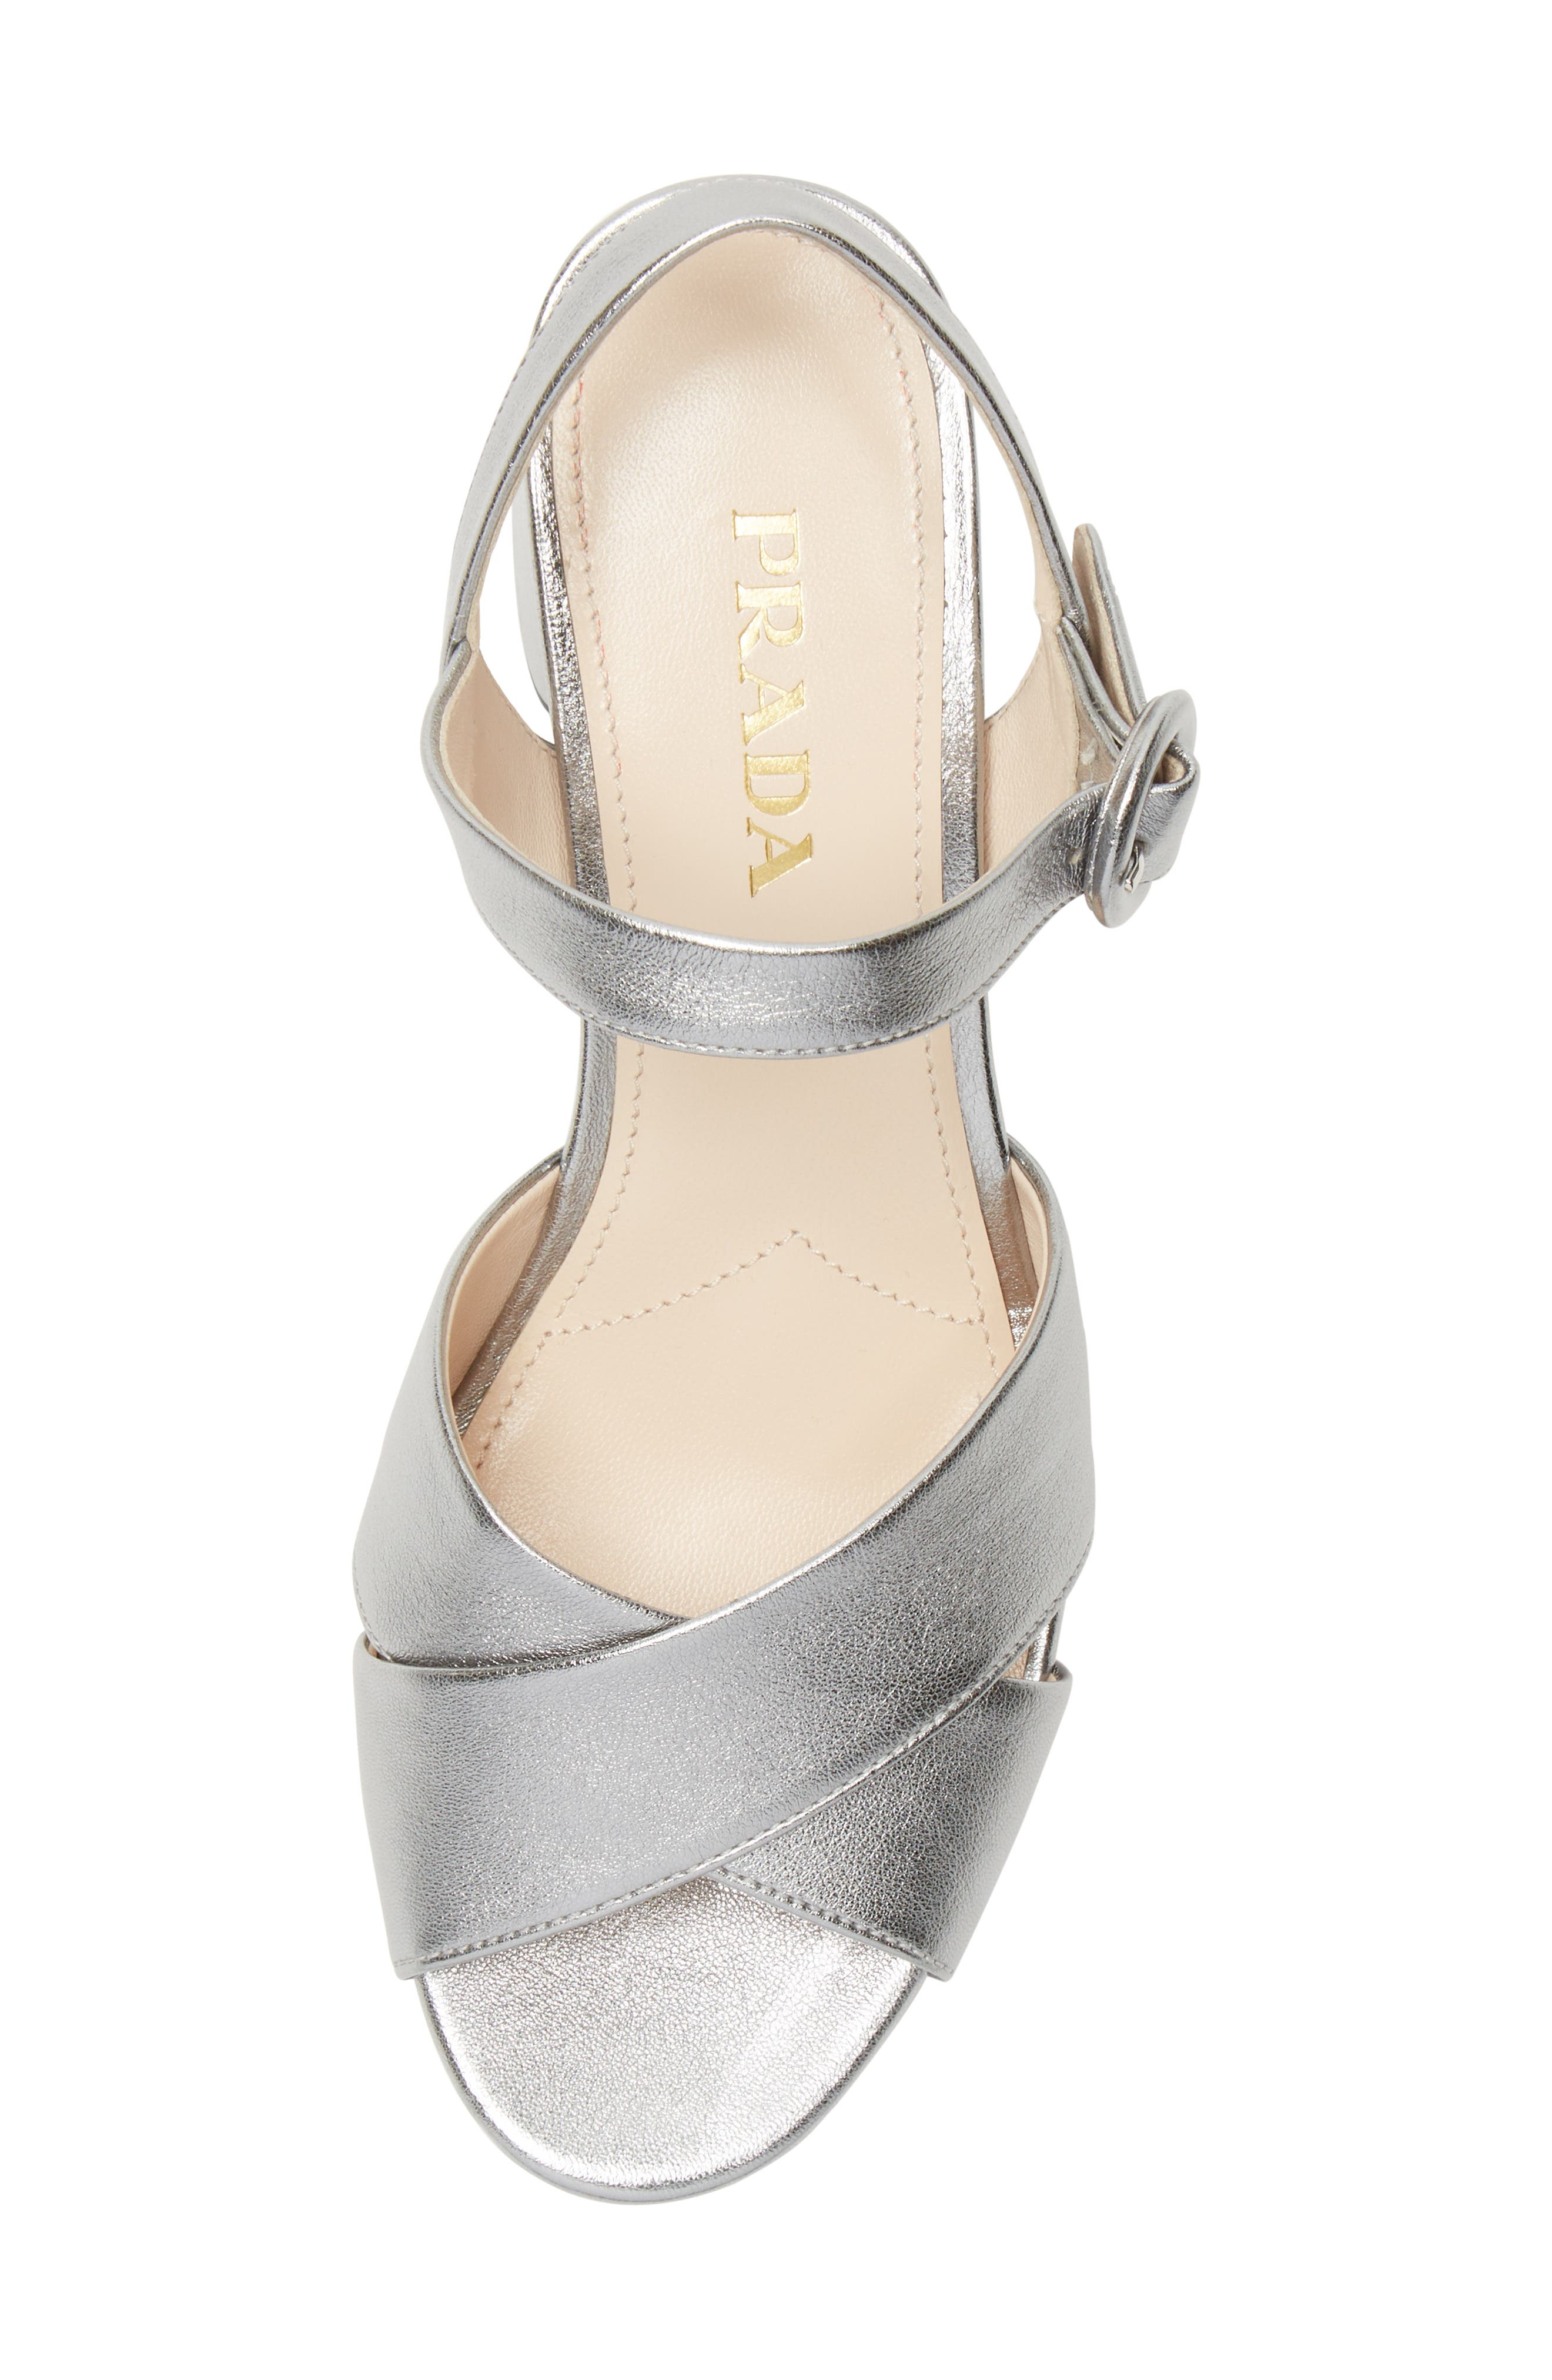 PRADA, Quarter Strap Platform Sandal, Alternate thumbnail 5, color, SILVER